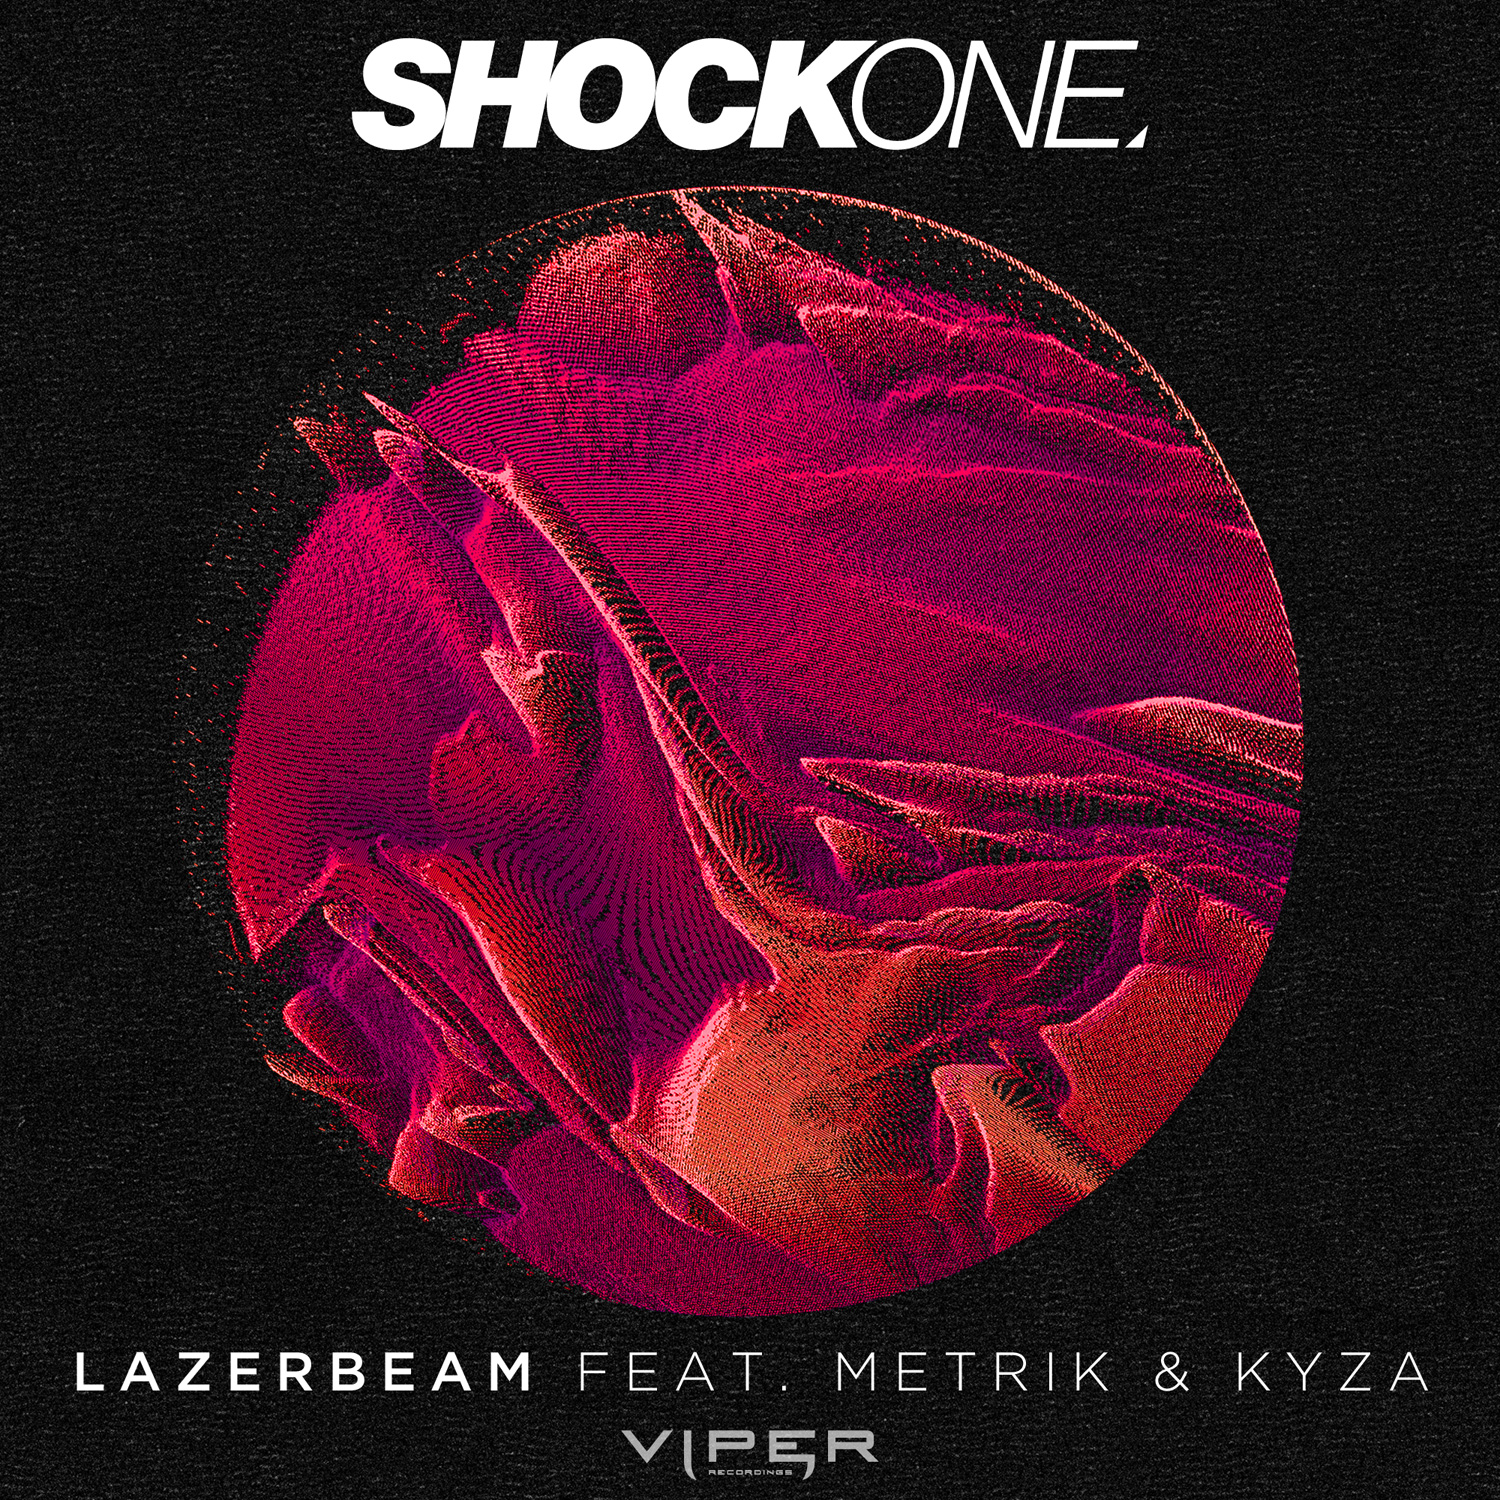 Shockone-Lazerbeam